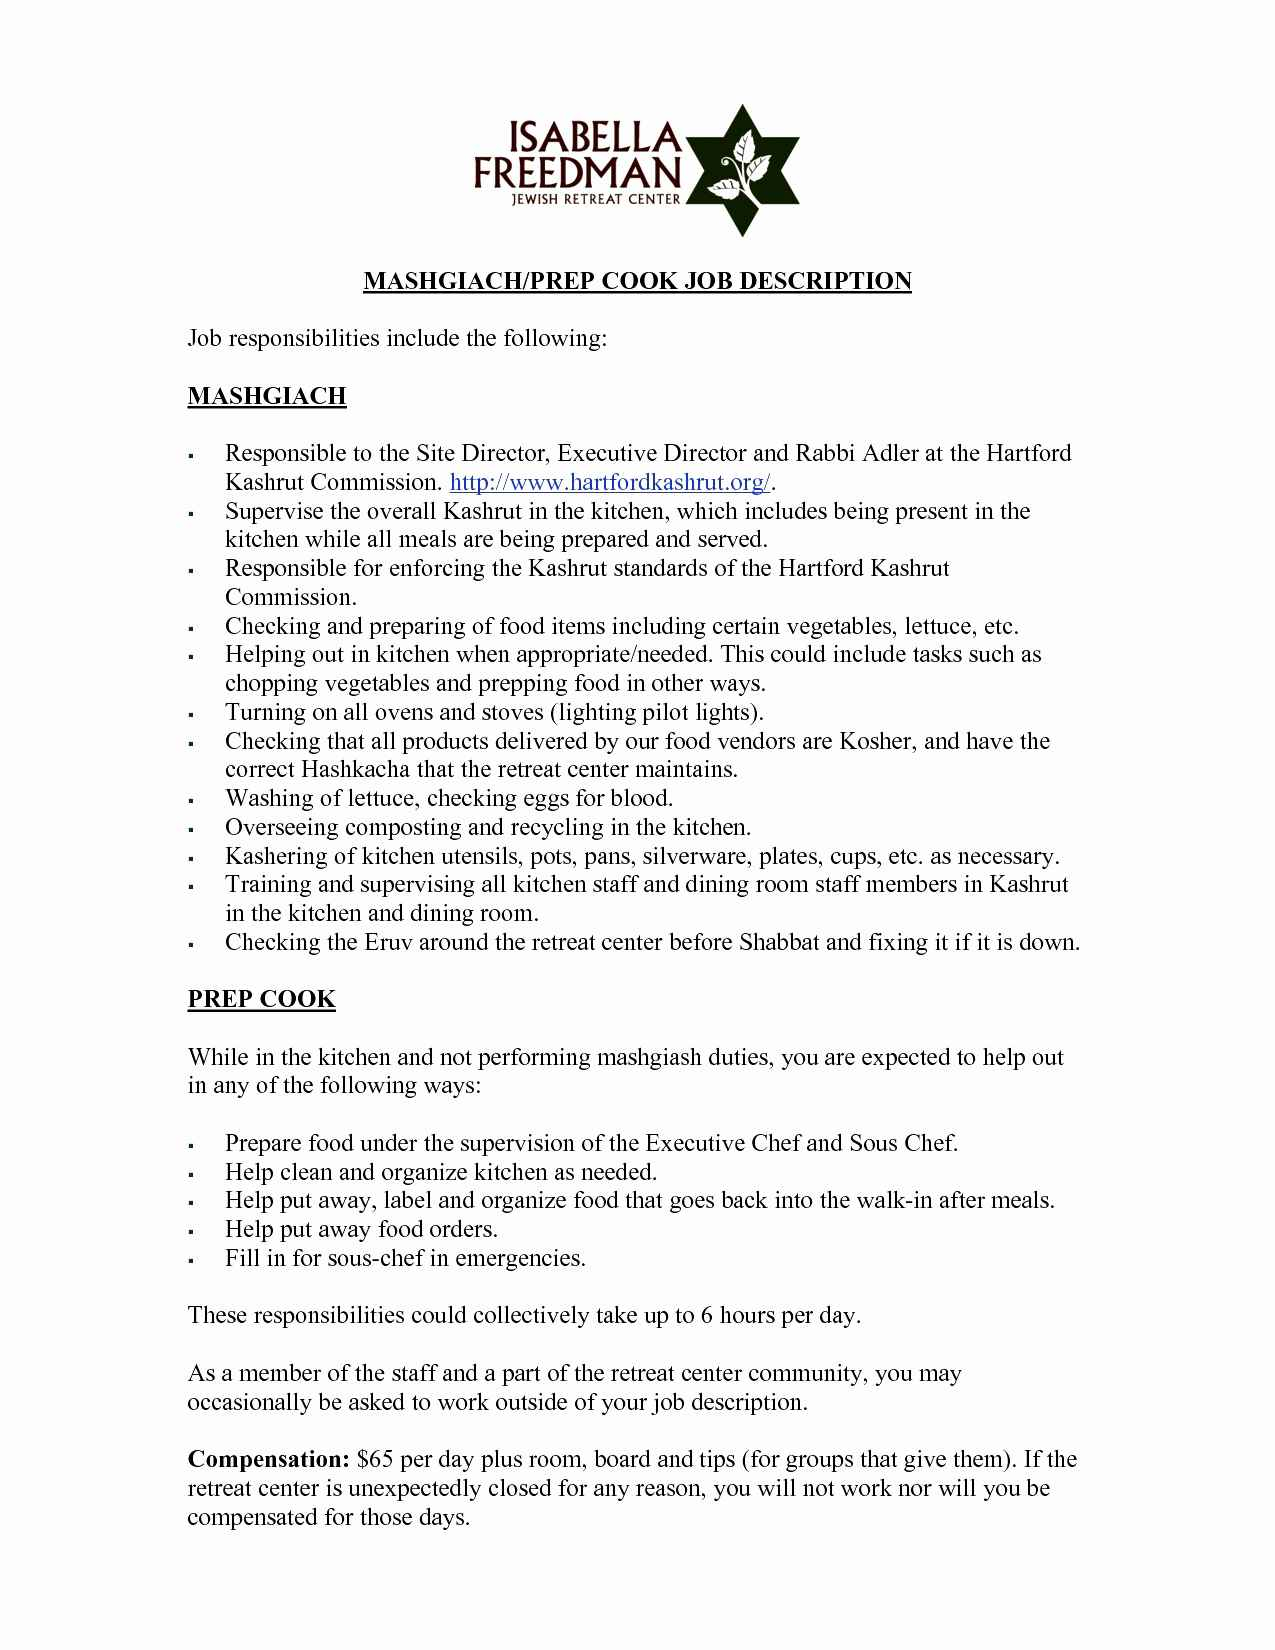 Free Online Cover Letter Template - Sample Resume for Line Teaching Position Inspirational Resume and